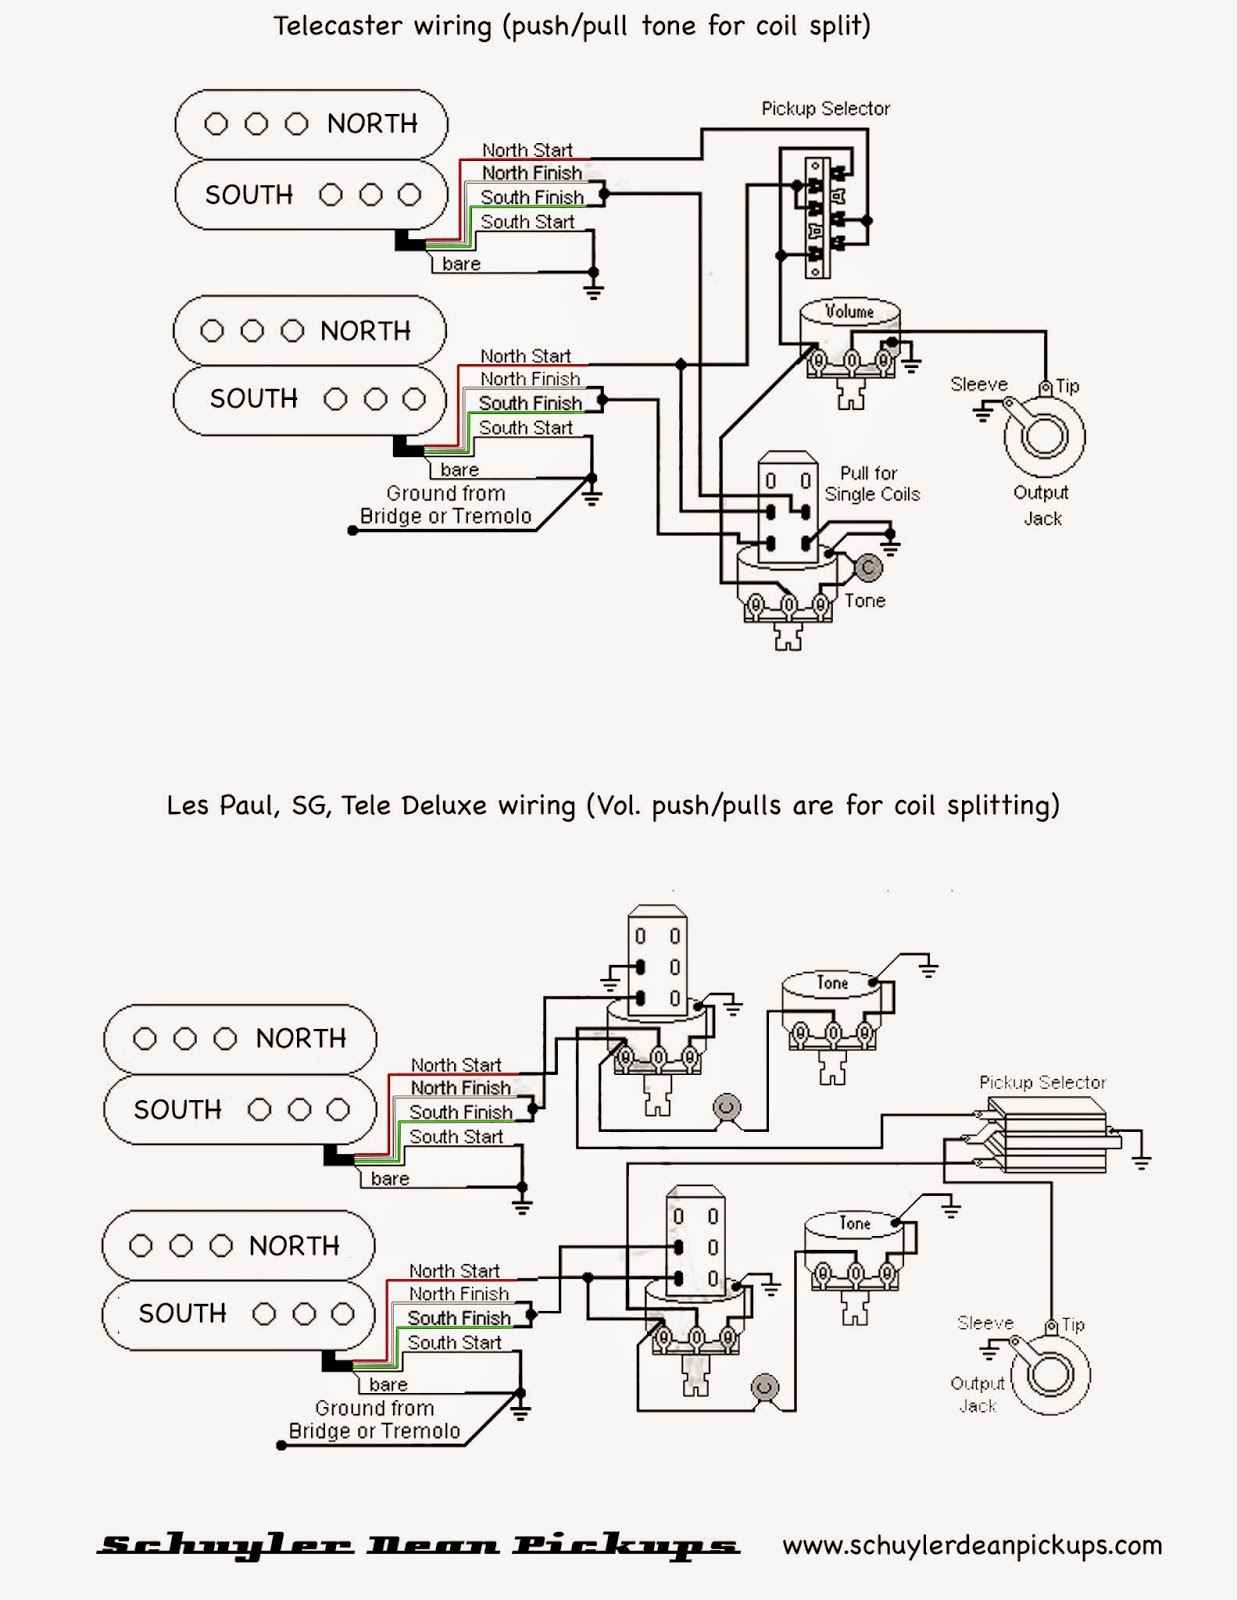 Guitar Wiring Diagrams Coil Split Just Another Diagram Blog Guitarelectronicscom 2 Humbuckers 5way Dimarzio Telecaster As Well Gibson Les Paul Rh 6 7 Travelmate Nz De 5 Way Strat Switch